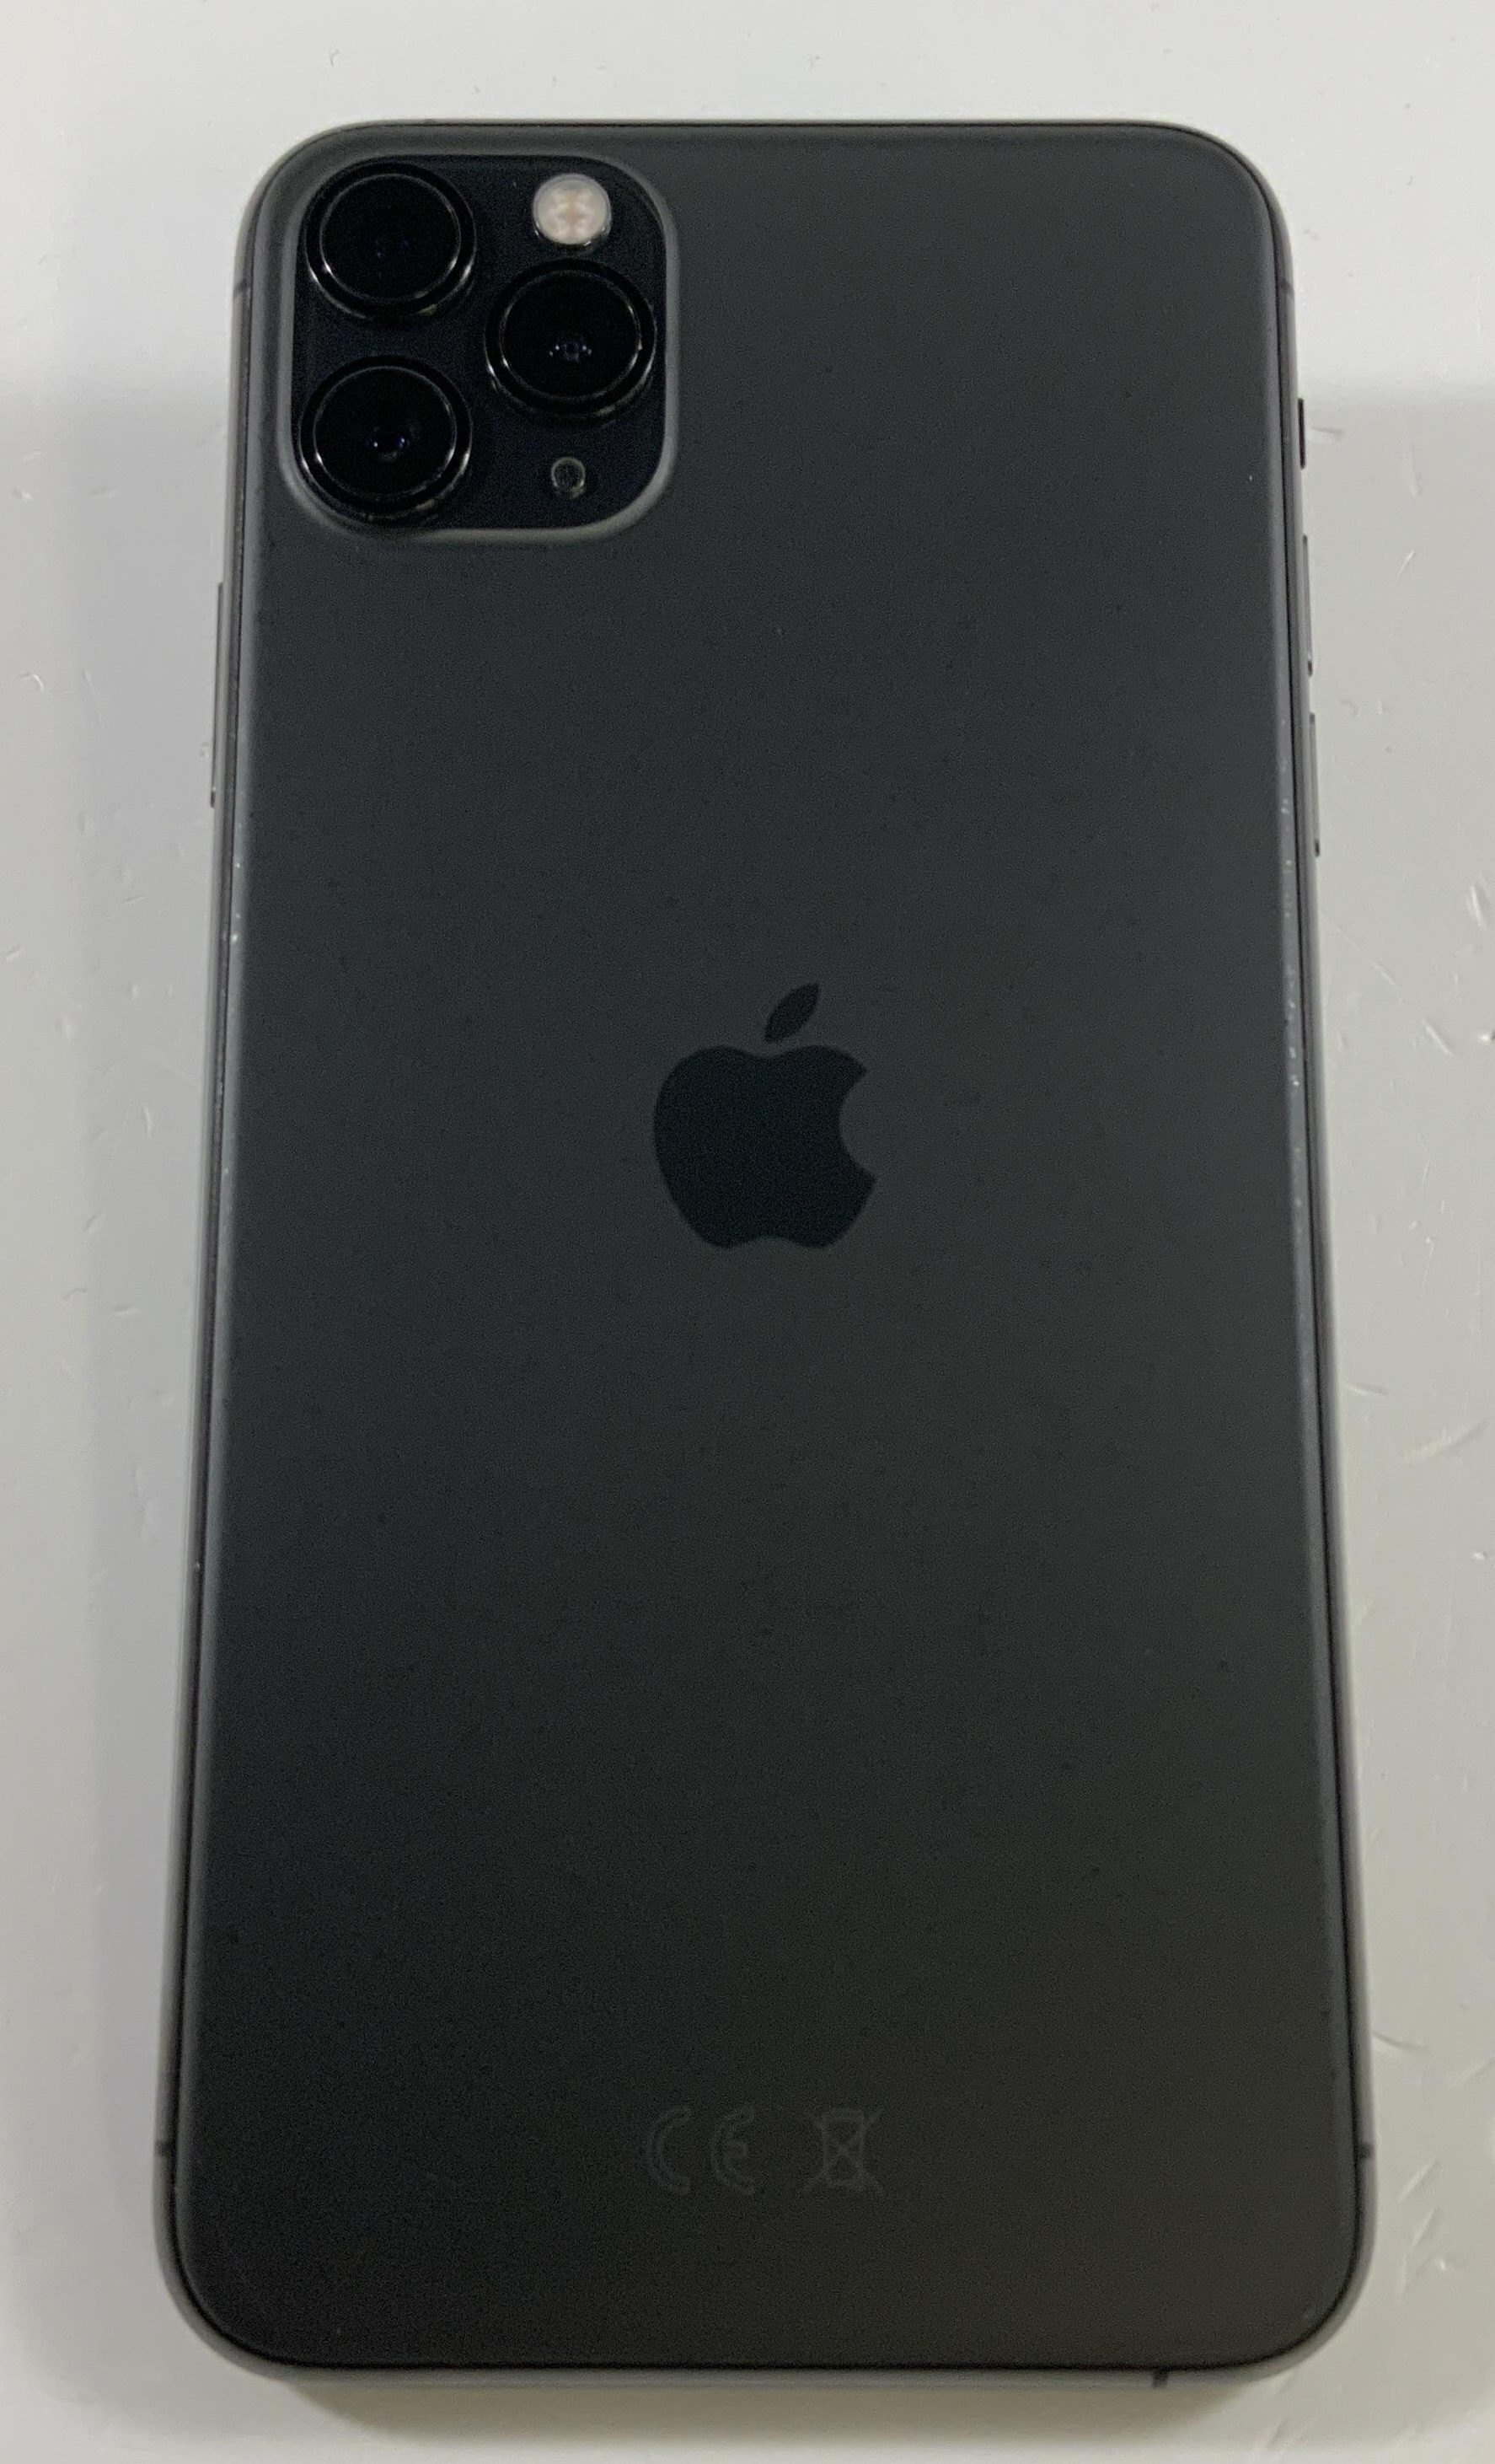 iPhone 11 Pro Max 64GB, 64GB, Space Gray, obraz 2